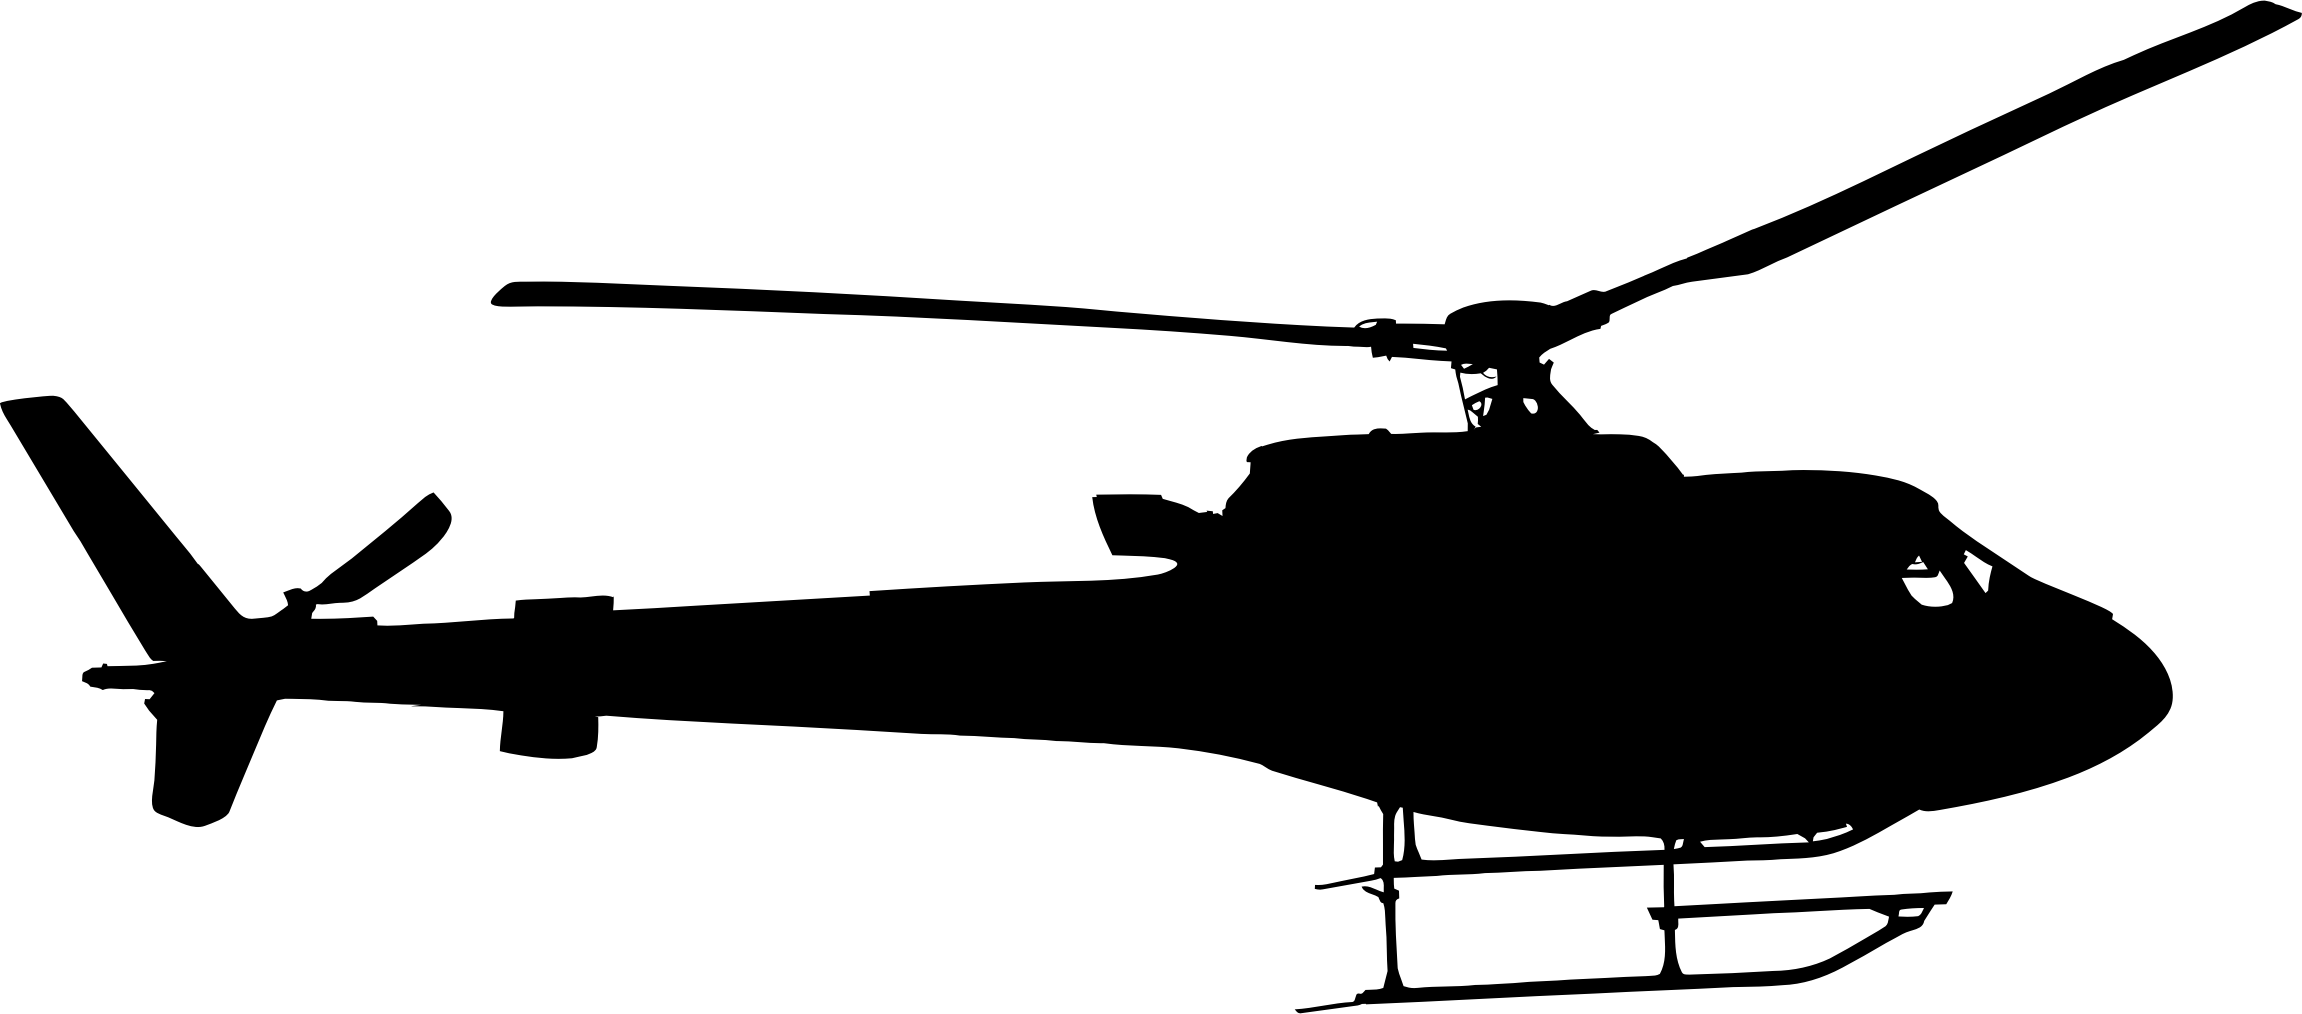 Army Easy Draw Helicopter